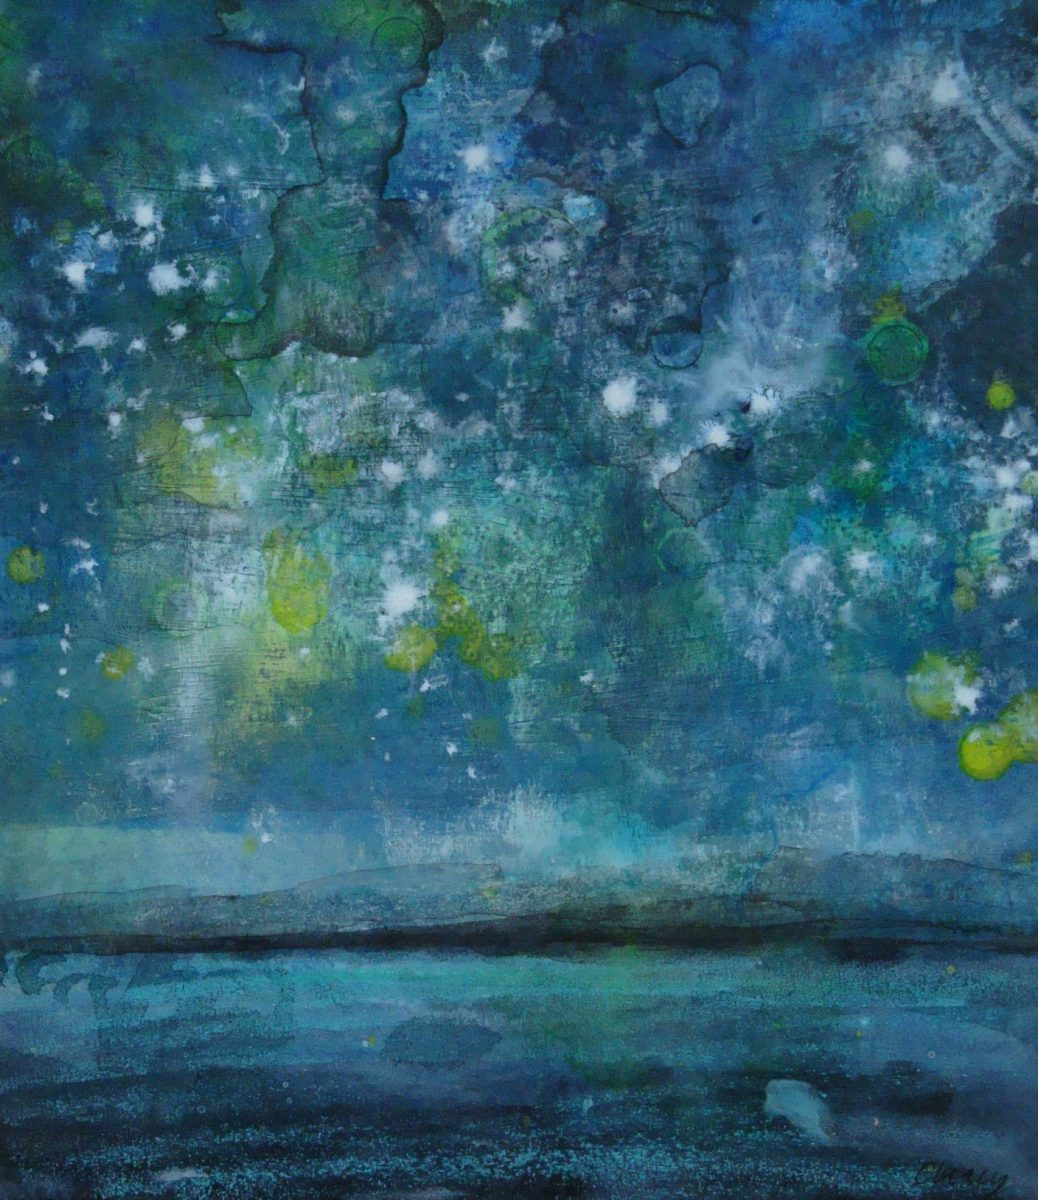 Blawnin Clancy: Sailing by the Light of the Stars, mixed media on paper 24 x 21cm | Uisce | Saturday 4 November  – Saturday 25 November 2017 | Garter Lane Arts Centre